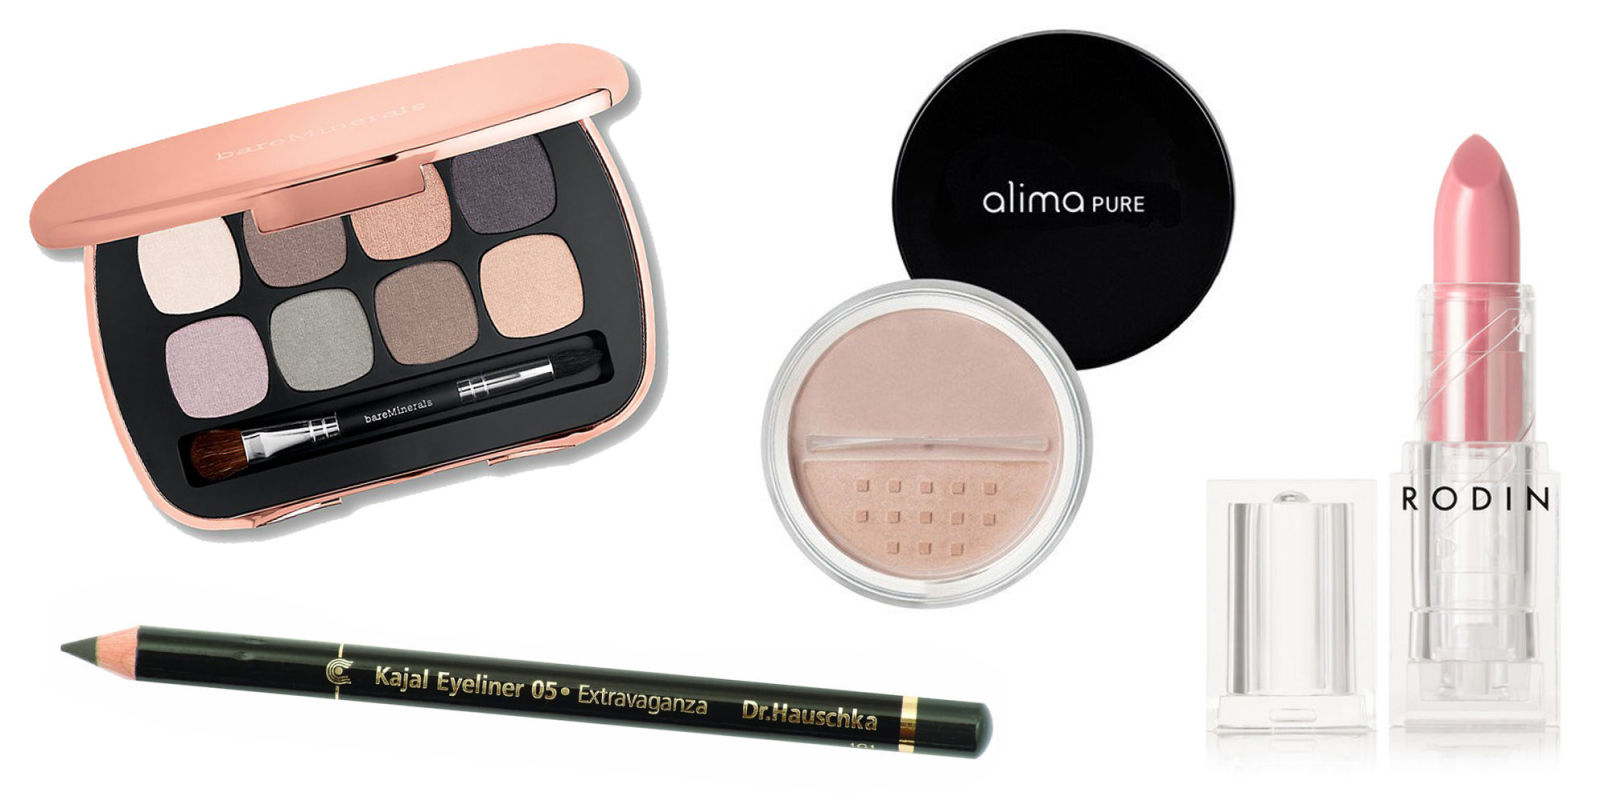 20 Natural Makeup Products Your Skin Will Thank You For ...